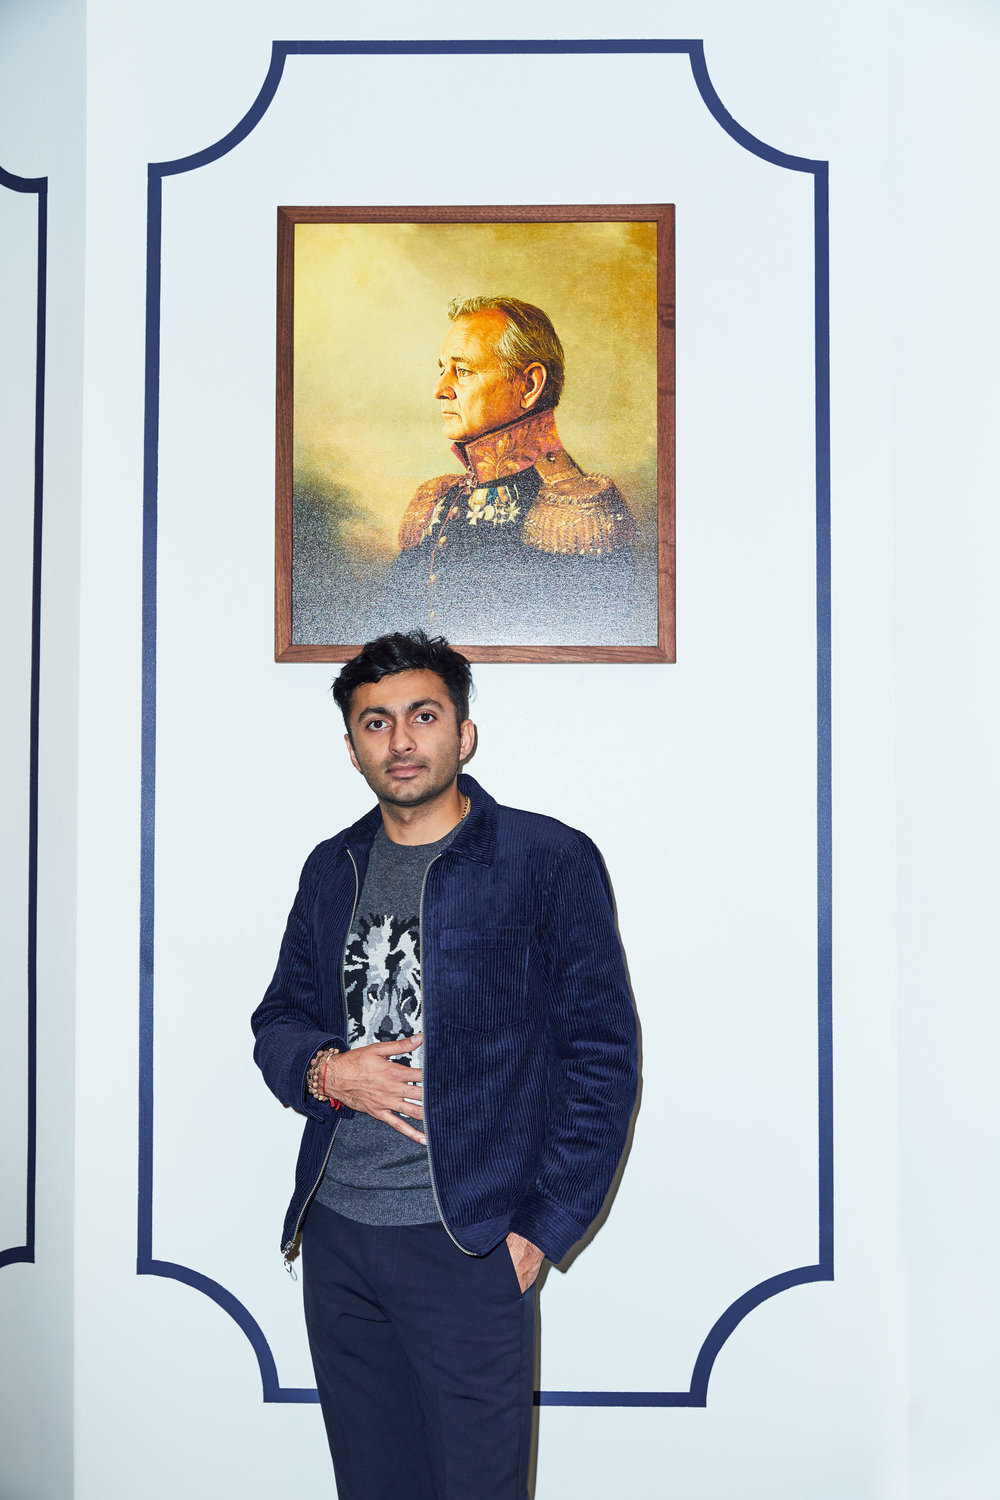 Nimesh, in front of a famous masterpiece wears the    Lightweight Wool Crew Neck (Charcoal Lion)   , the    Corduroy Shirt Jacket (Navy)   , and the    Stretch Wool Dress Pants (Navy)